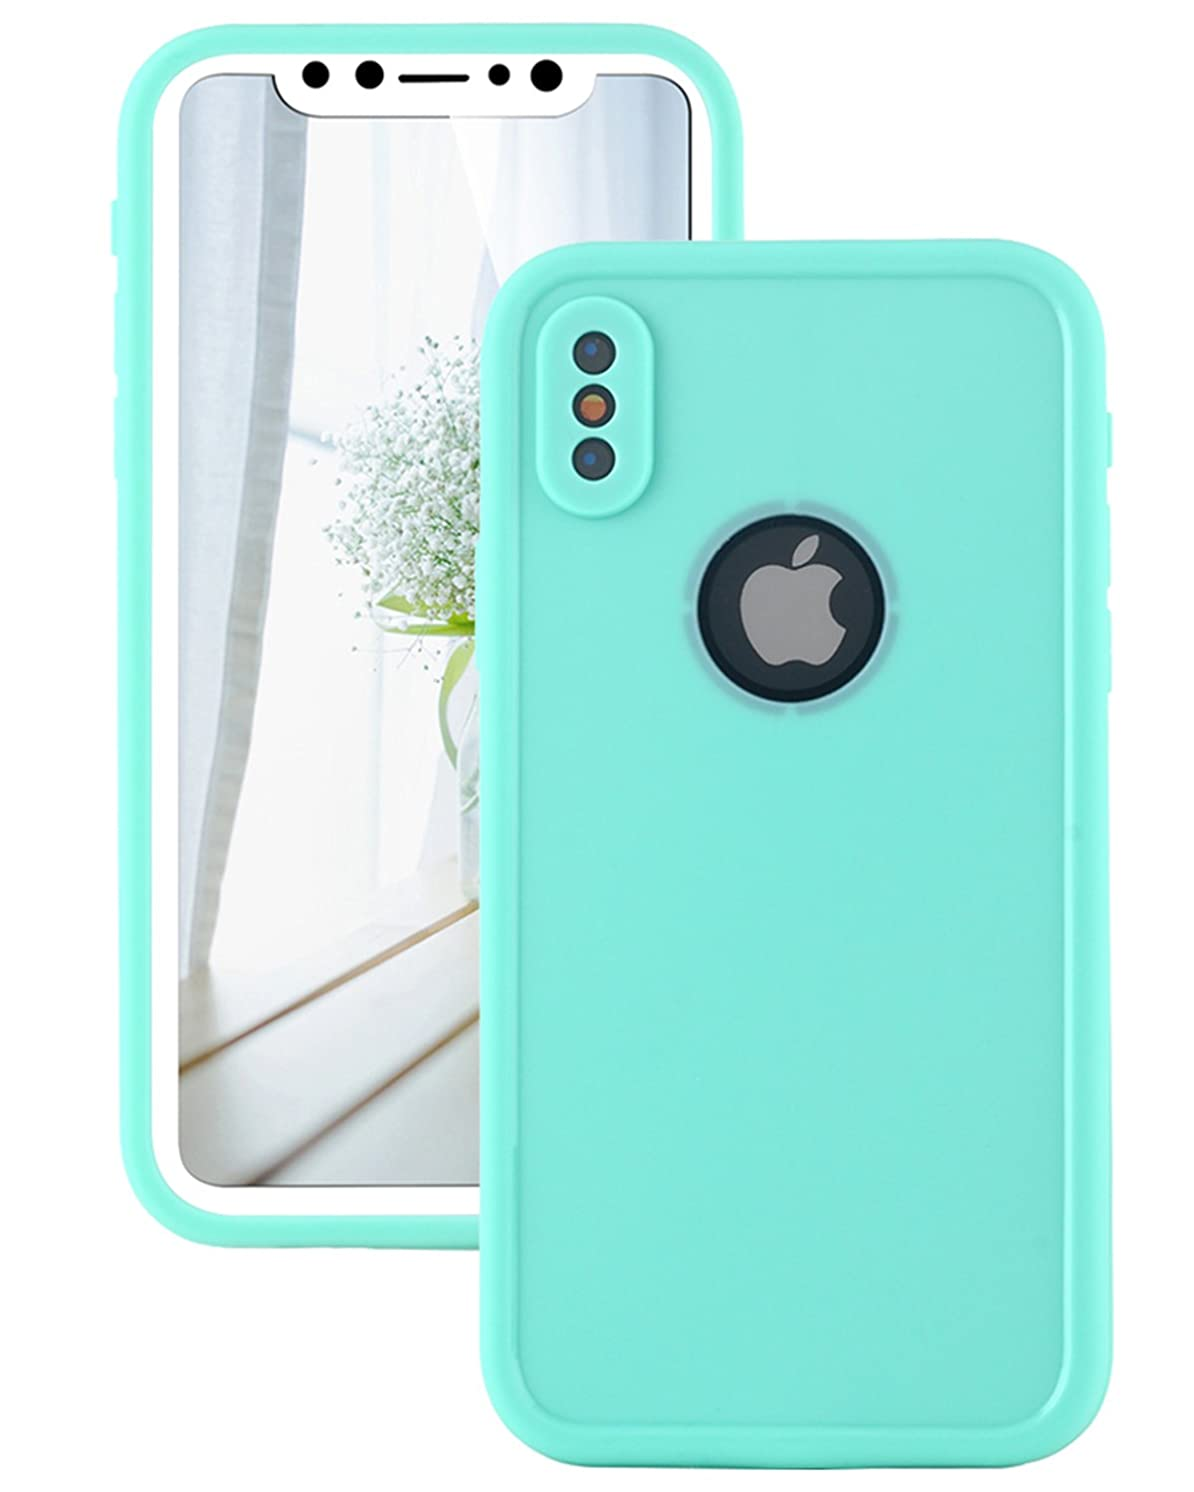 Lontect Compatible iPhone XS Waterproof Case Slim Thin Light Dirt/Dust Proof Snowproof Shockproof Case Full Body Underwater Protective Cover for Apple iPhone XS/iPhone X 5.8